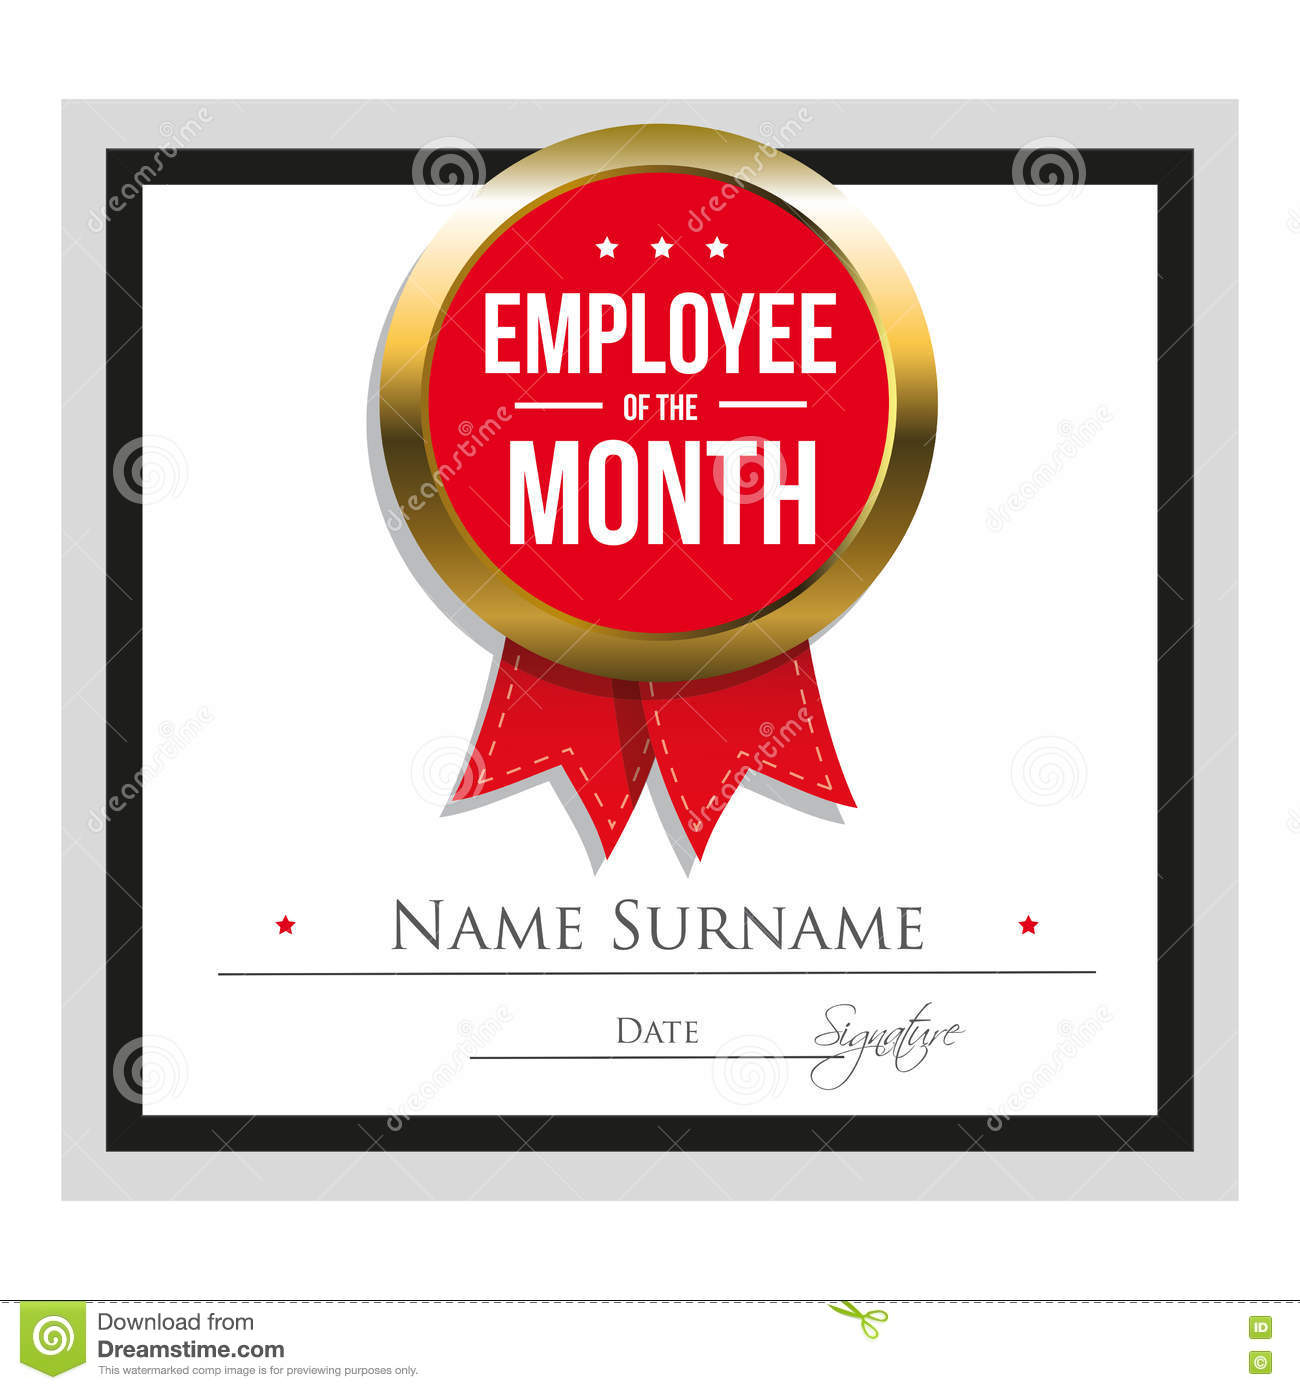 Employee of the month certificate template stock vector for Employee of the month certificate template free download